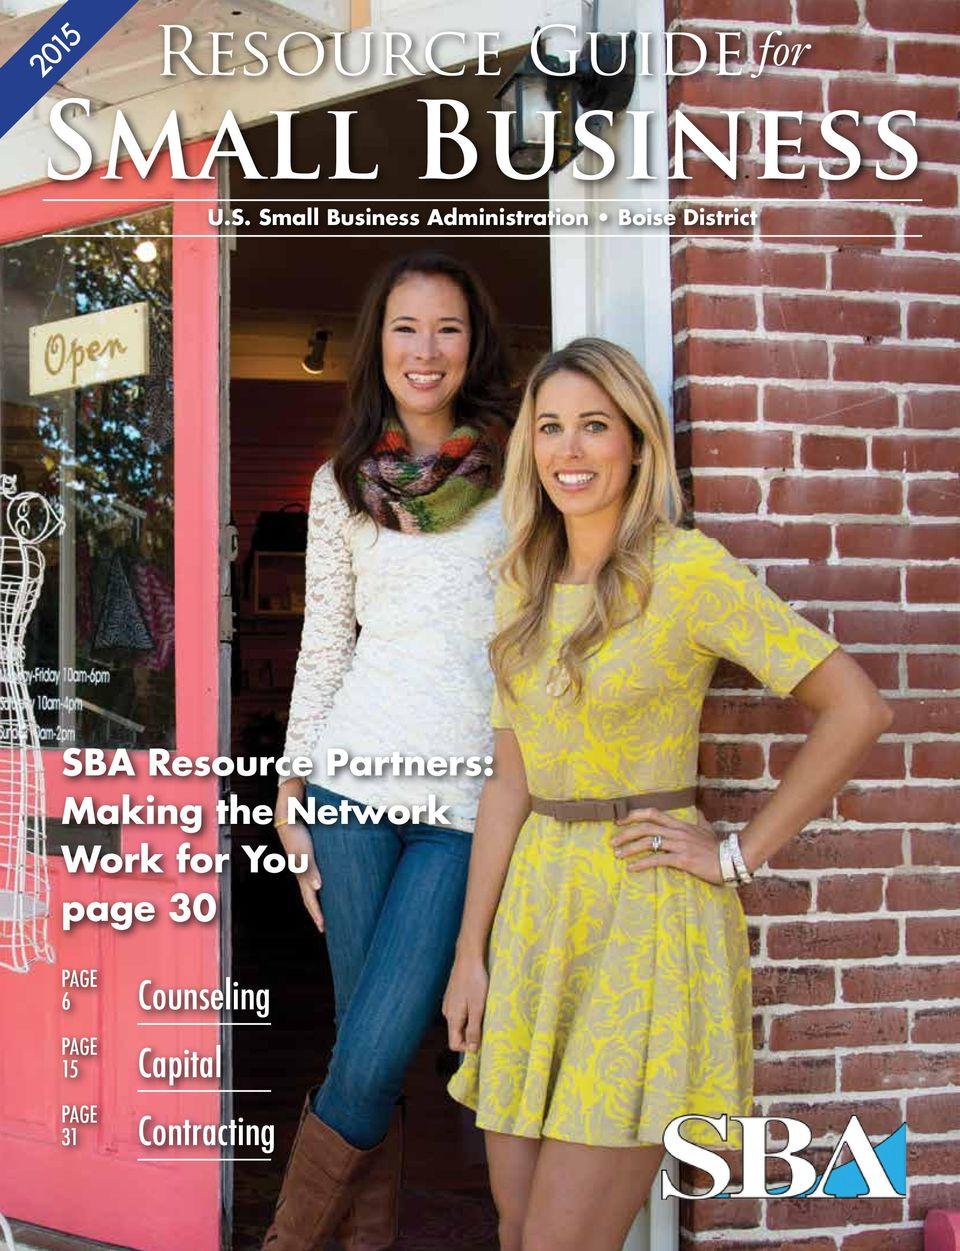 Small Business Administration Boise District SBA